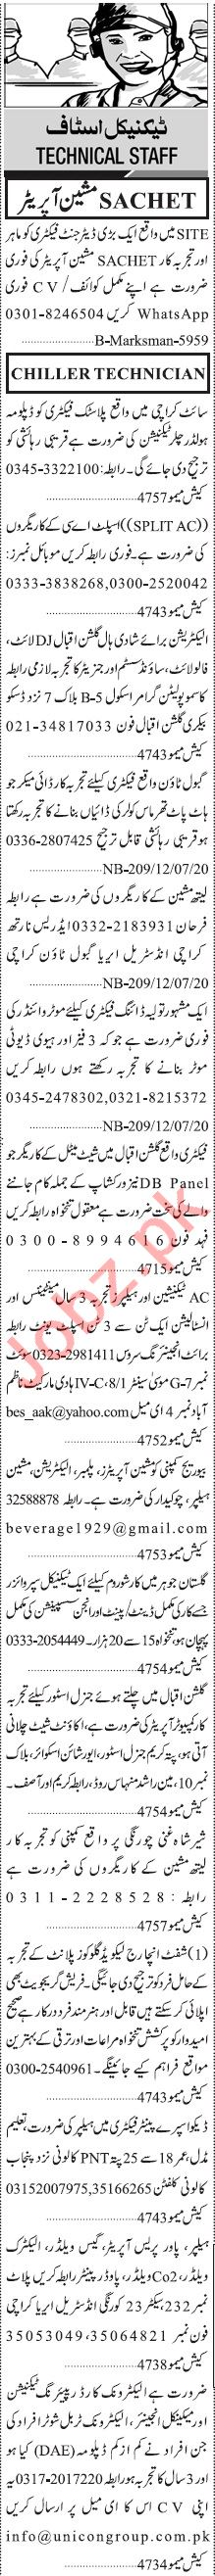 Jang Sunday Classified Ads 12th July 2020 for Manufactruring